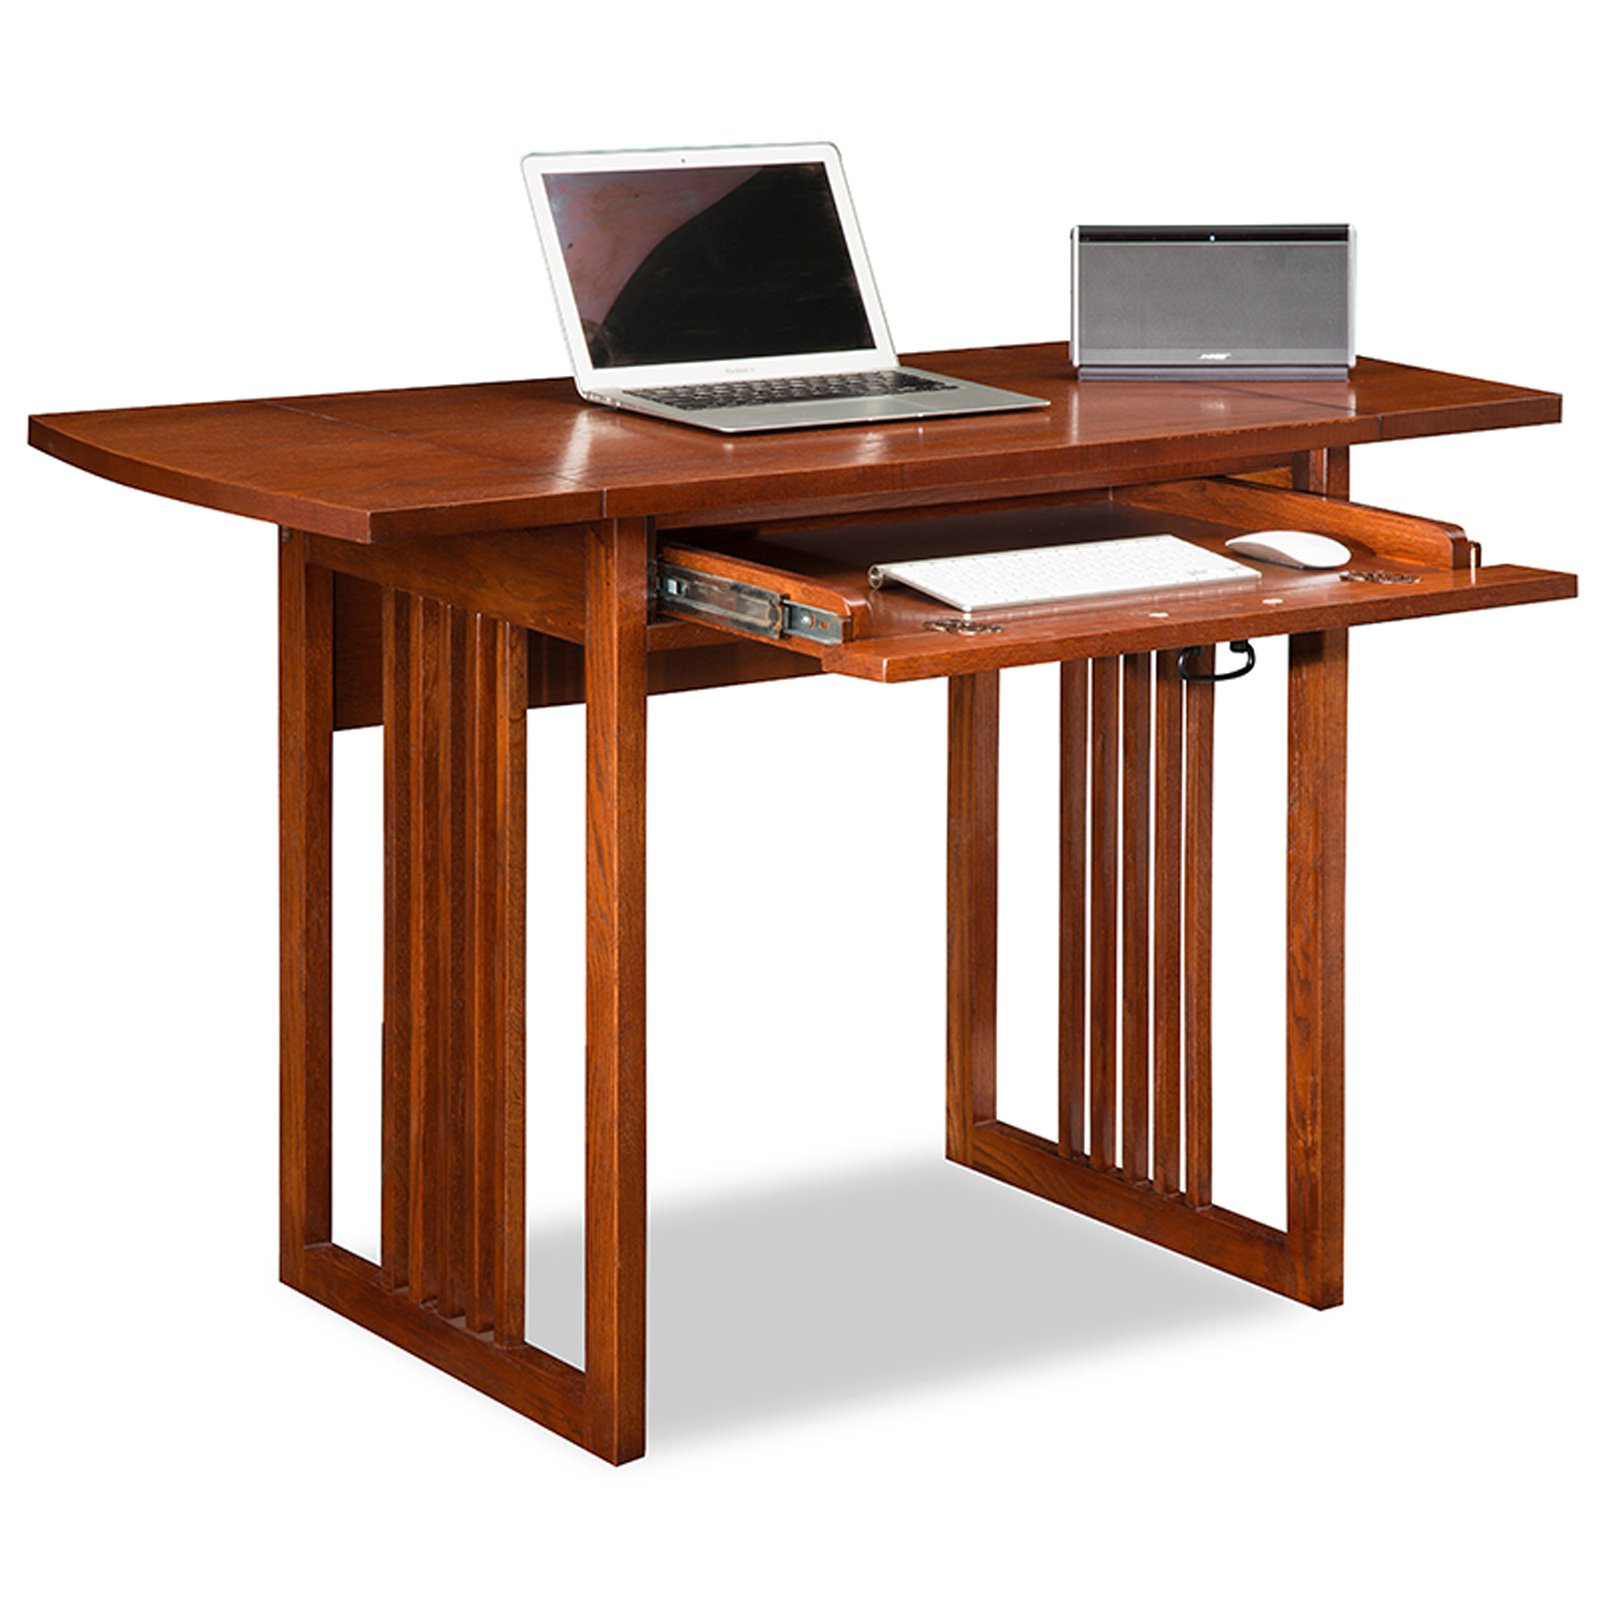 Leick Home Mission Oak Drop Leaf Computer/Writing Desk